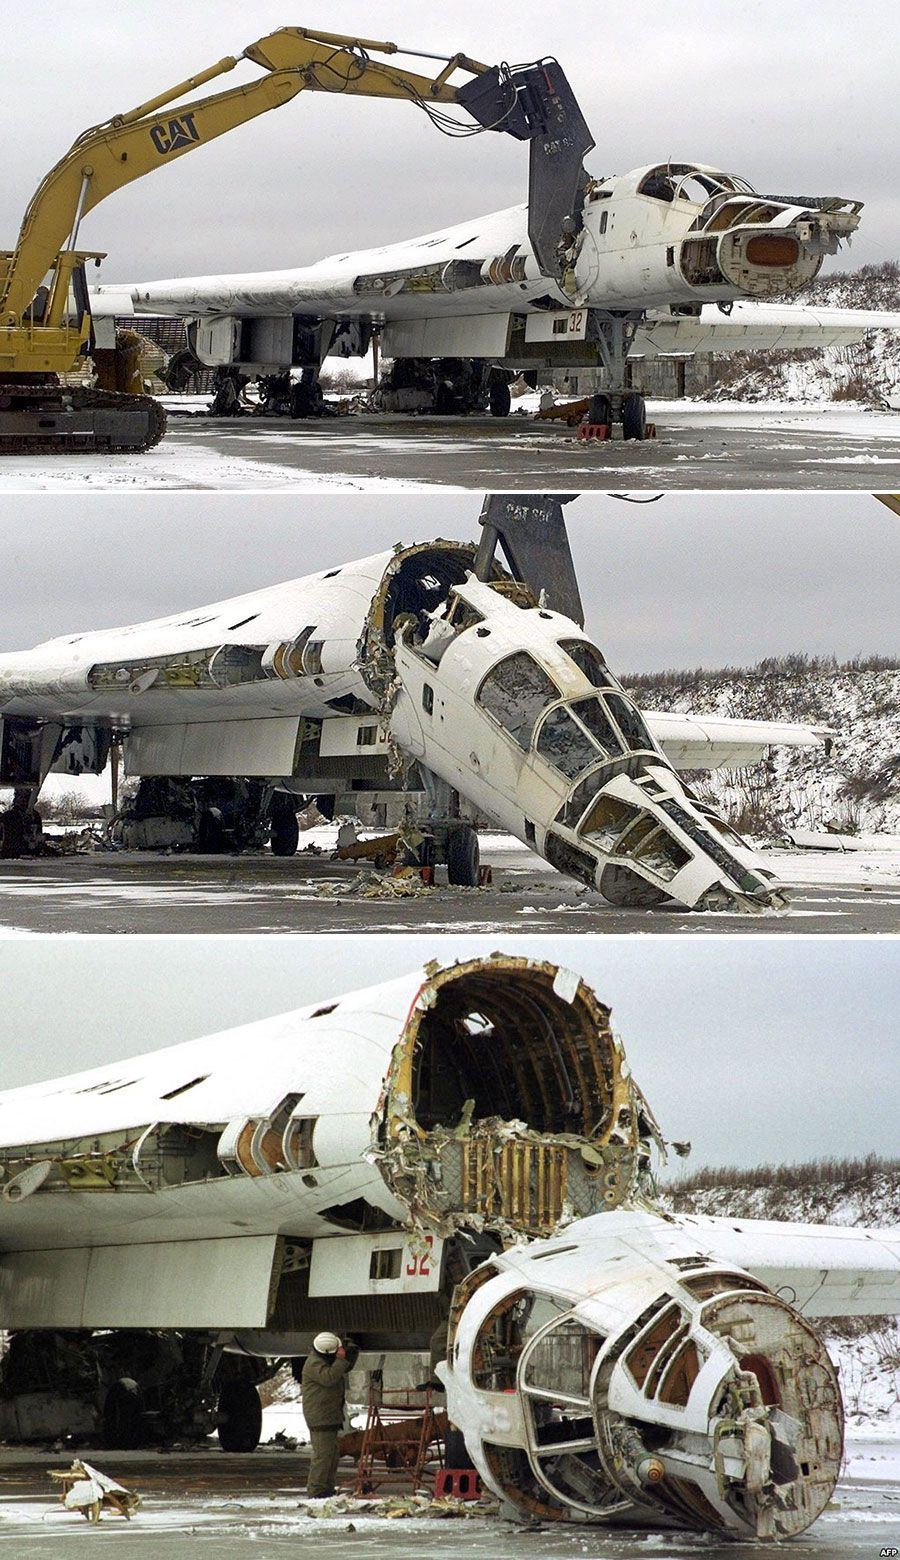 Destruction of Tu-160 supersonic, variable sweep wingheavy strategic bomber - UaPosition